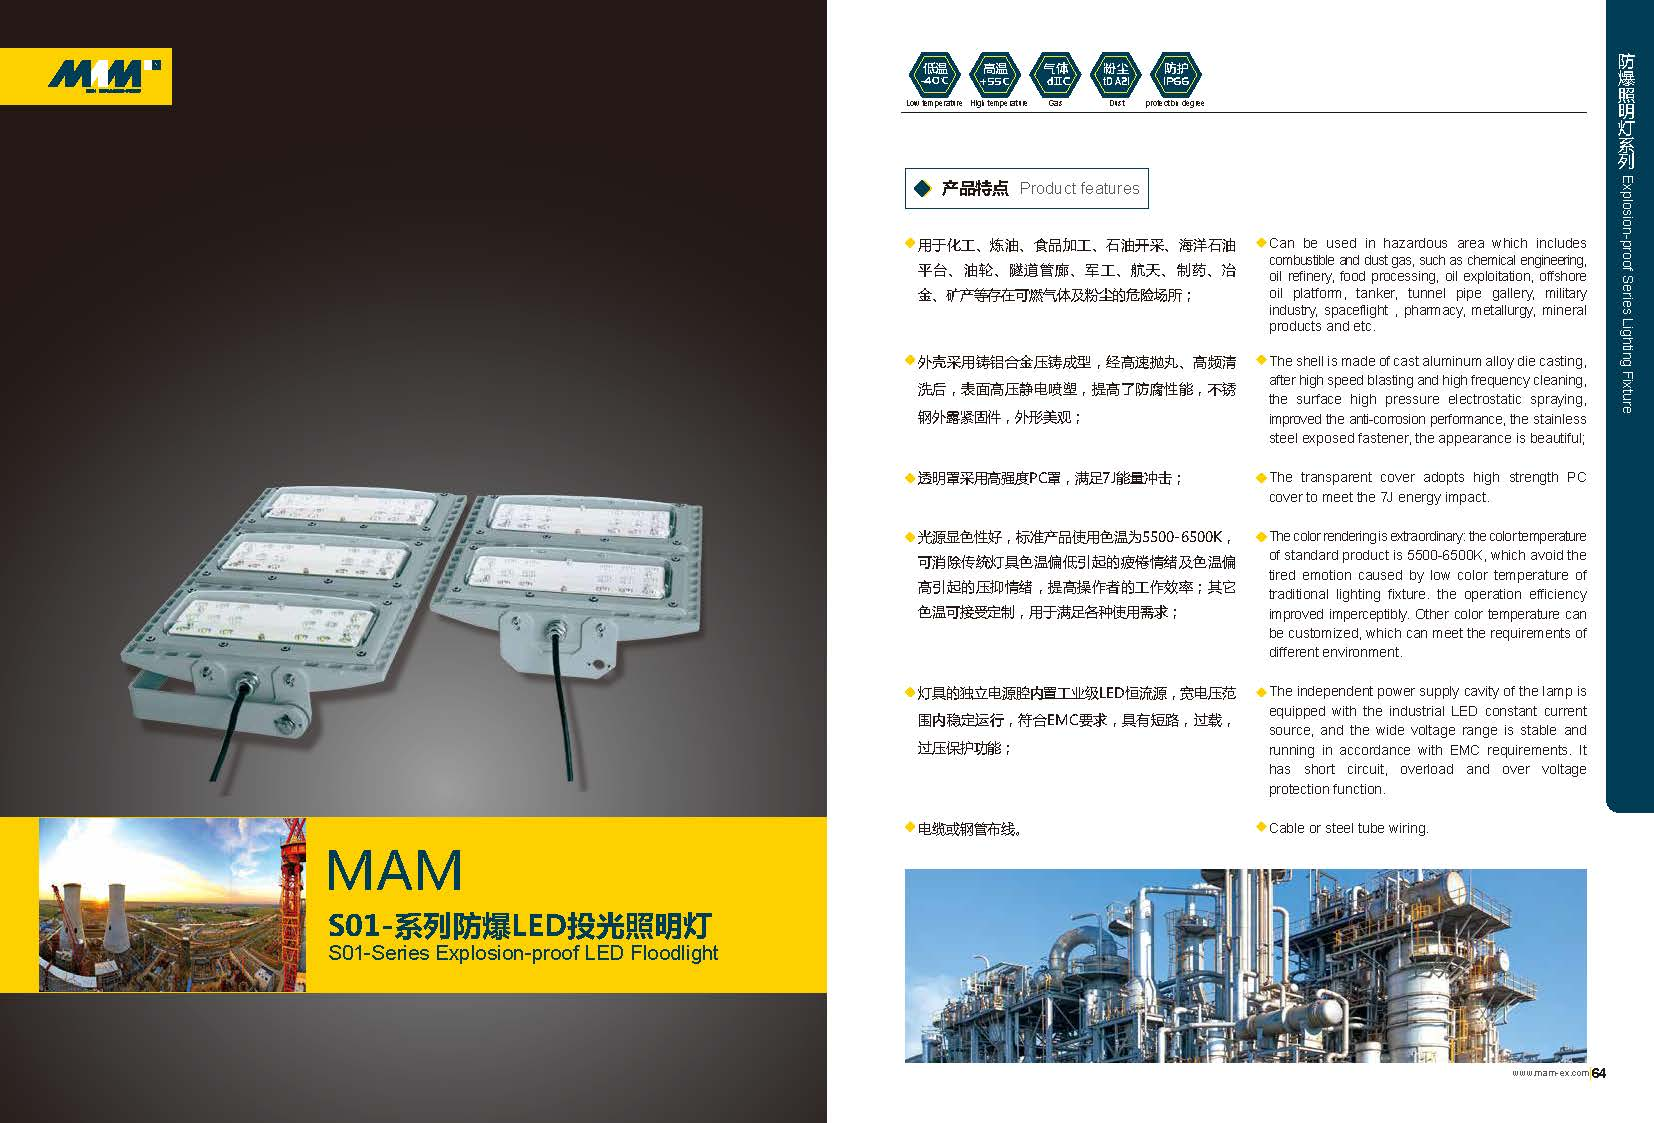 Explosion-proof LED Floodlight MAMS01-Series